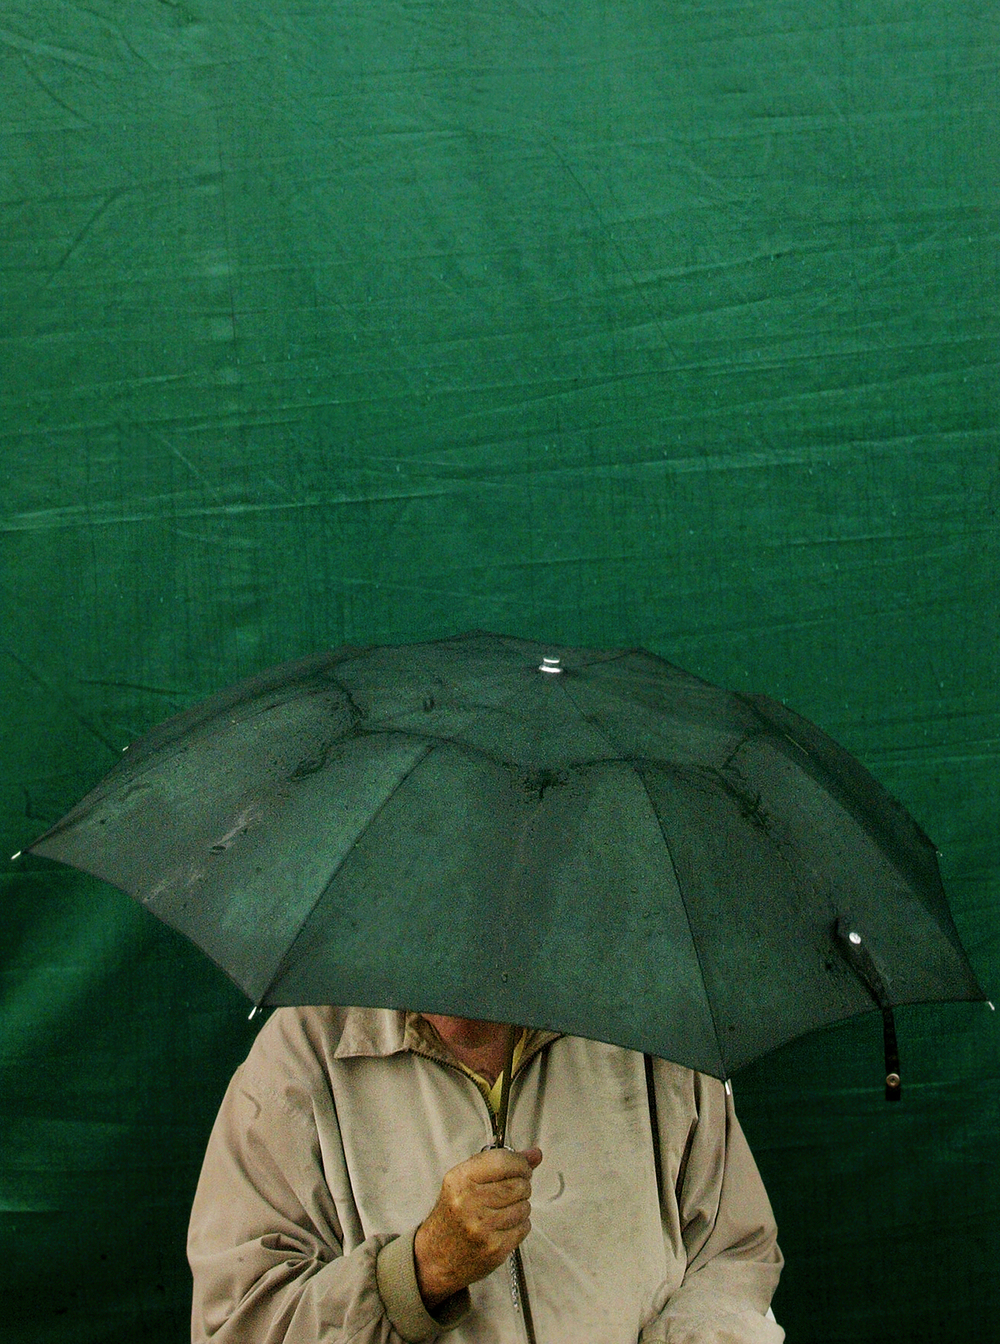 Don Presley waits out rain under his umbrella at The Rail Golf Course during the LPGA State Farm Classic. Ted Schurter/The State Journal-Register